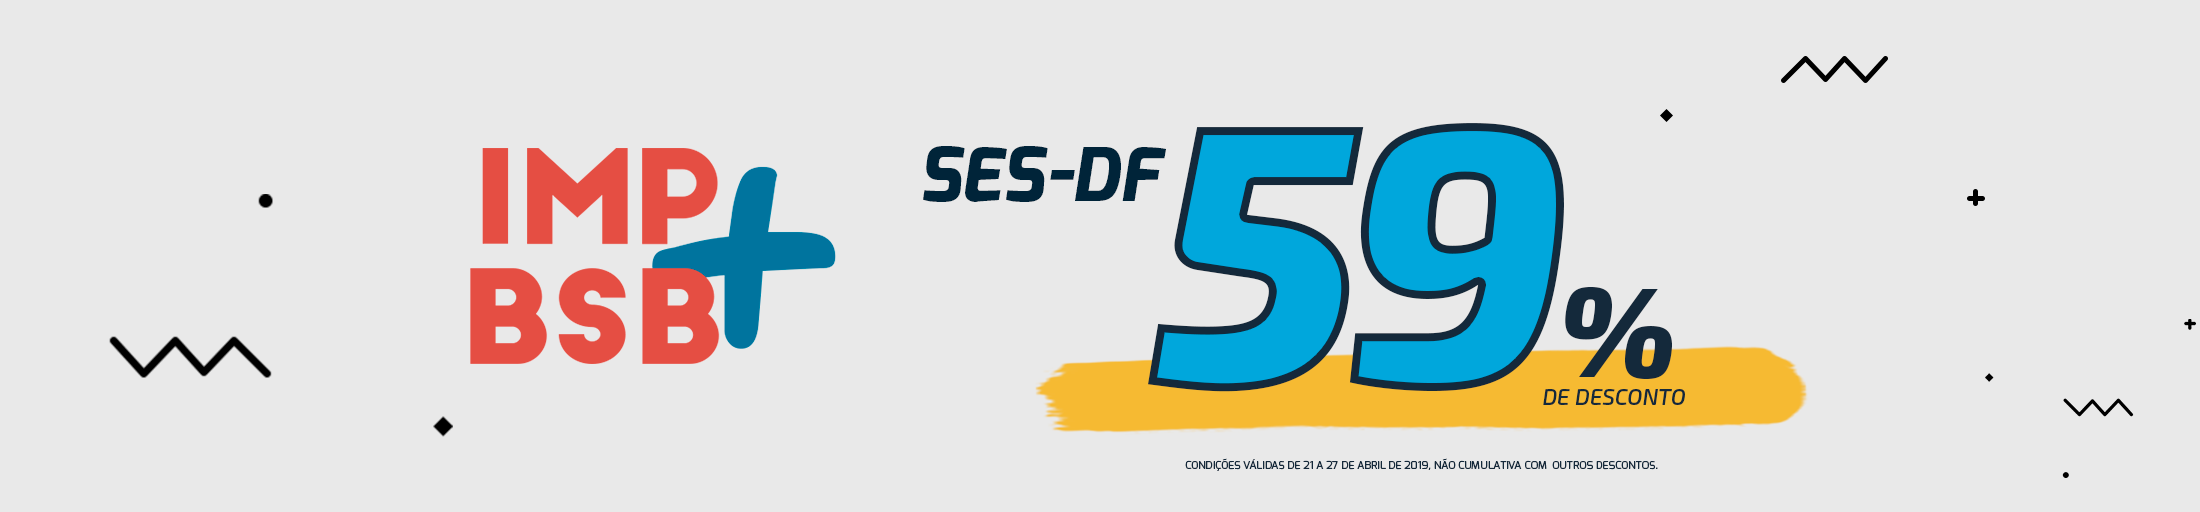 BANNER-SITE-SESDF